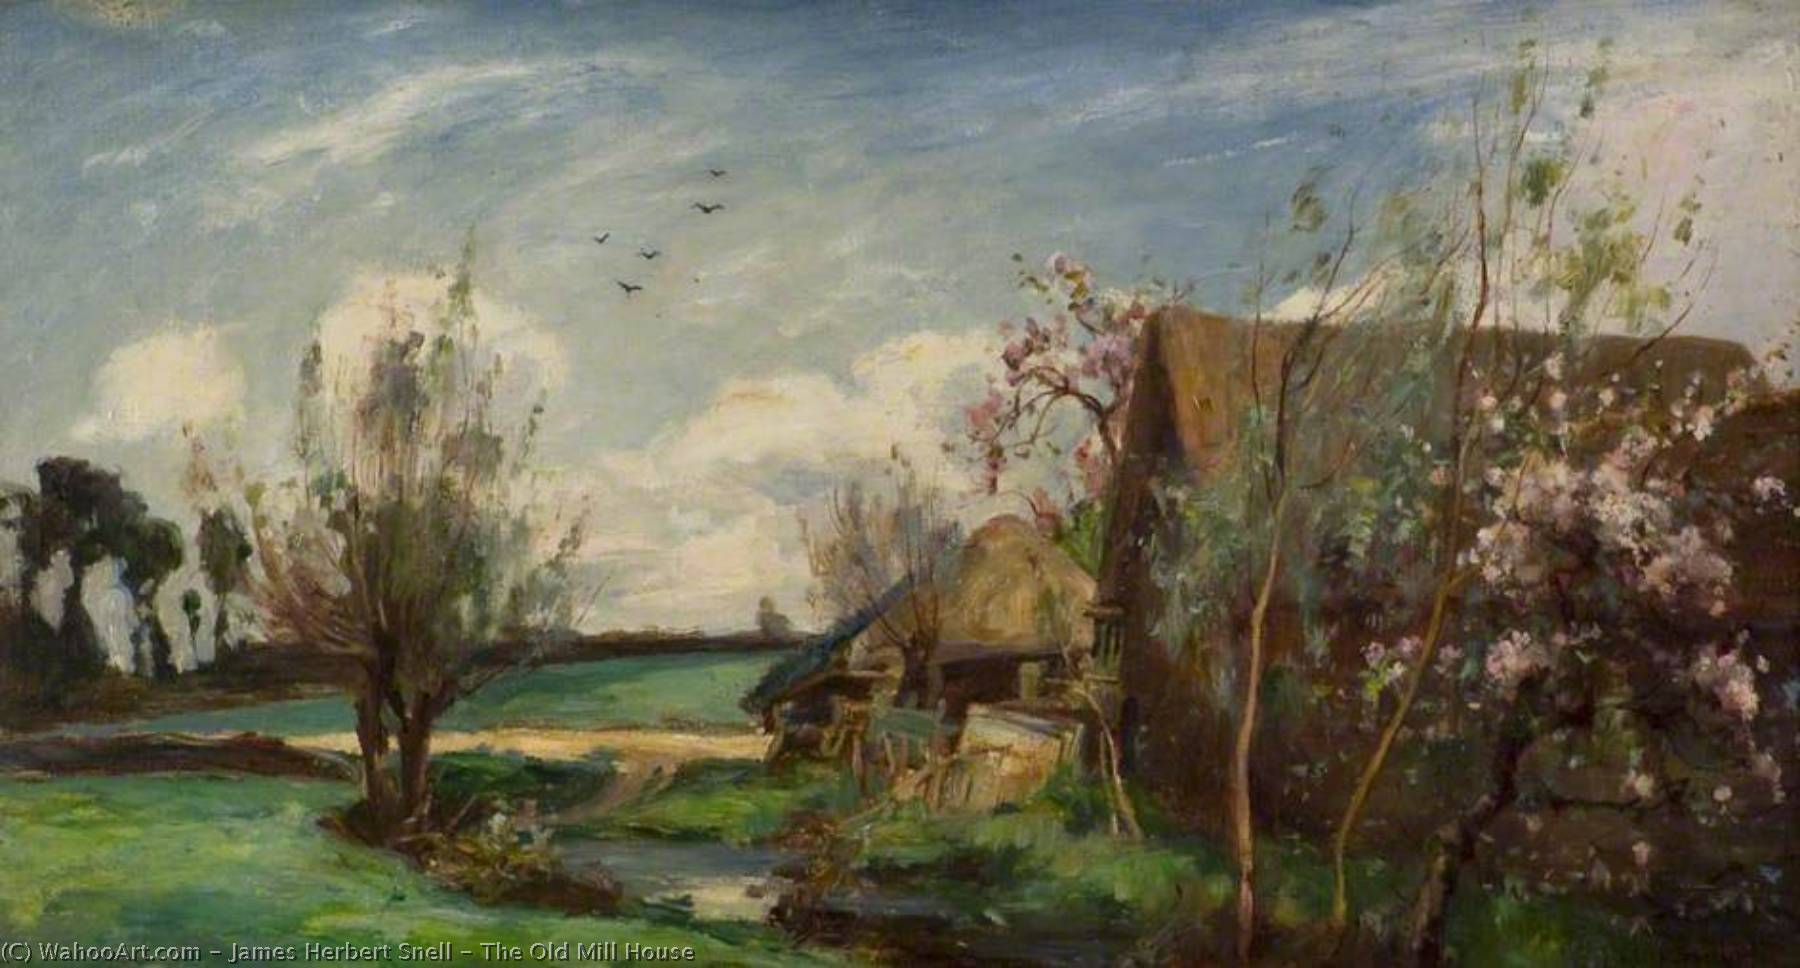 The Old Mill House, Oil On Canvas by James Herbert Snell